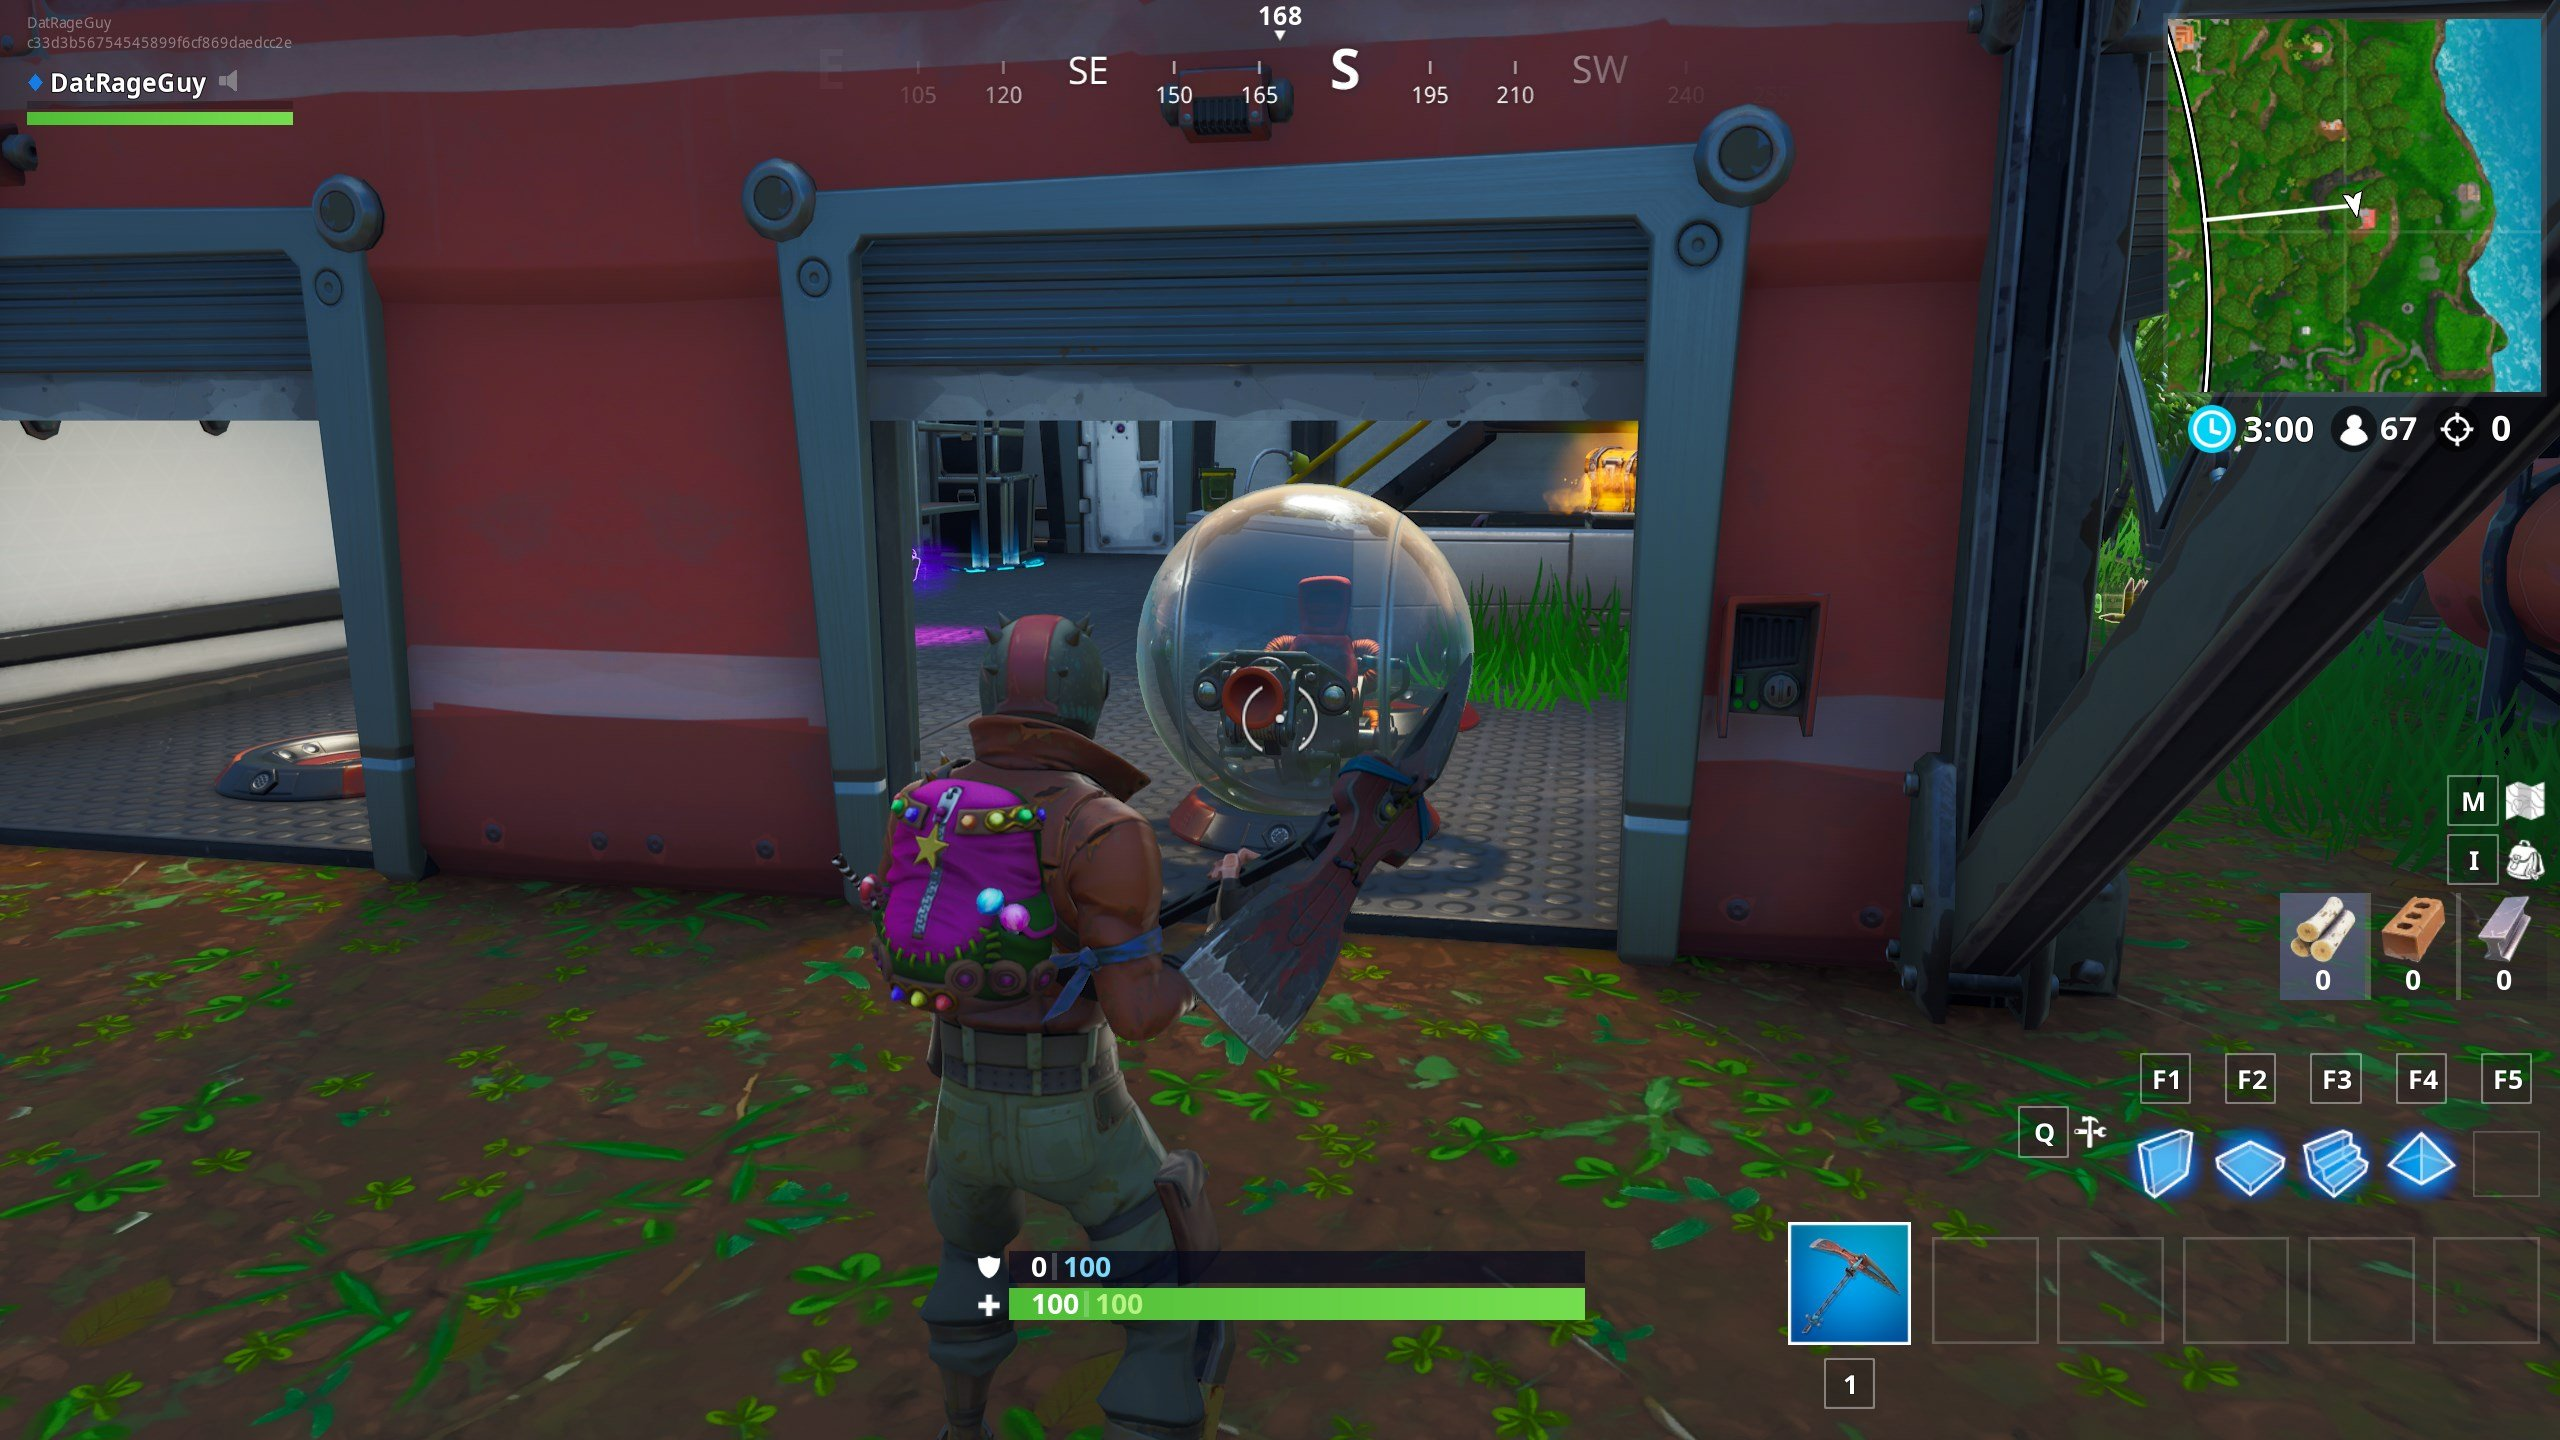 Use a Volcano Vent, a zipline, and a vehicle in Fortnite - finding a Baller